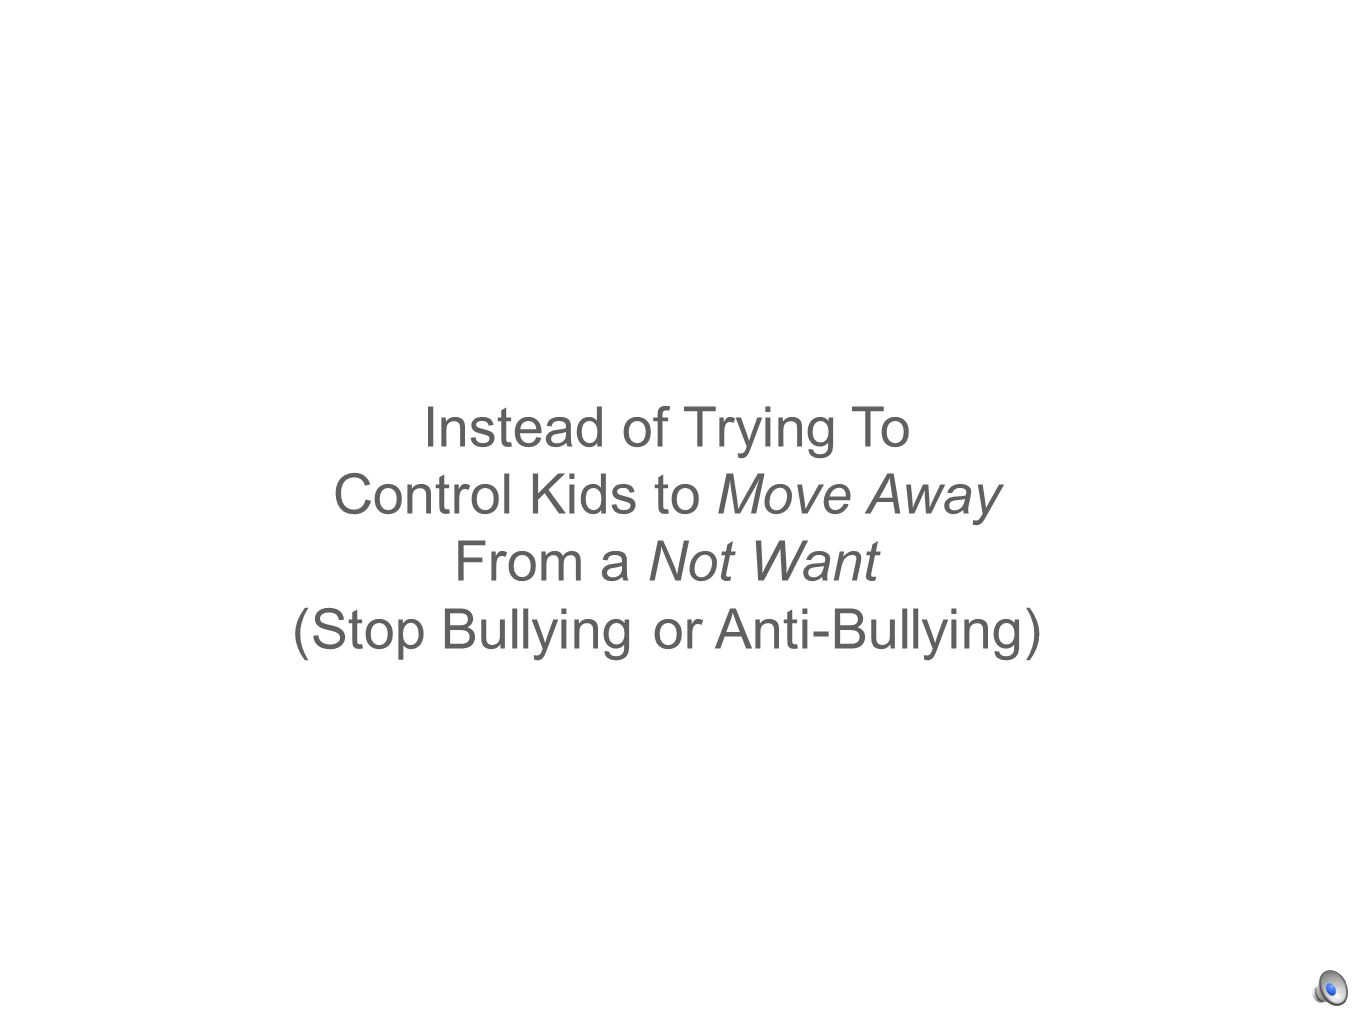 Instead of Trying To Control Kids to Move Away From a Not Want (Stop Bullying or Anti-Bullying)